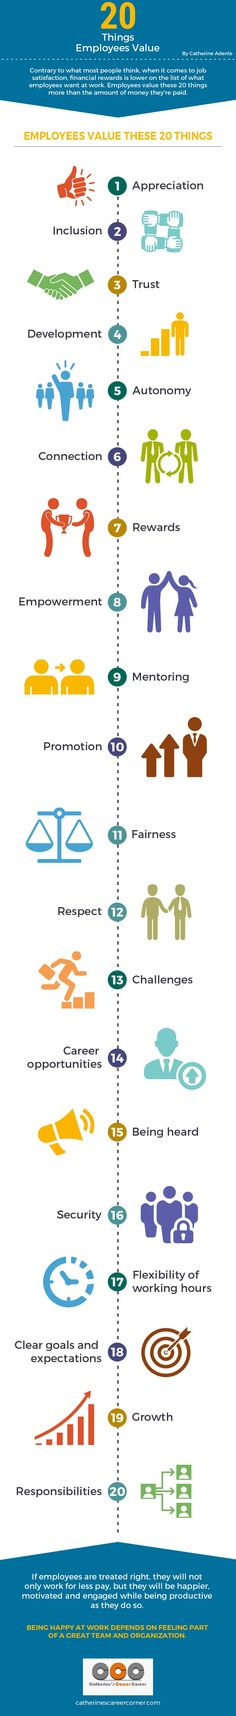 20 Things Employees Value www.tridentsqa.com #TridentSQA #Employees